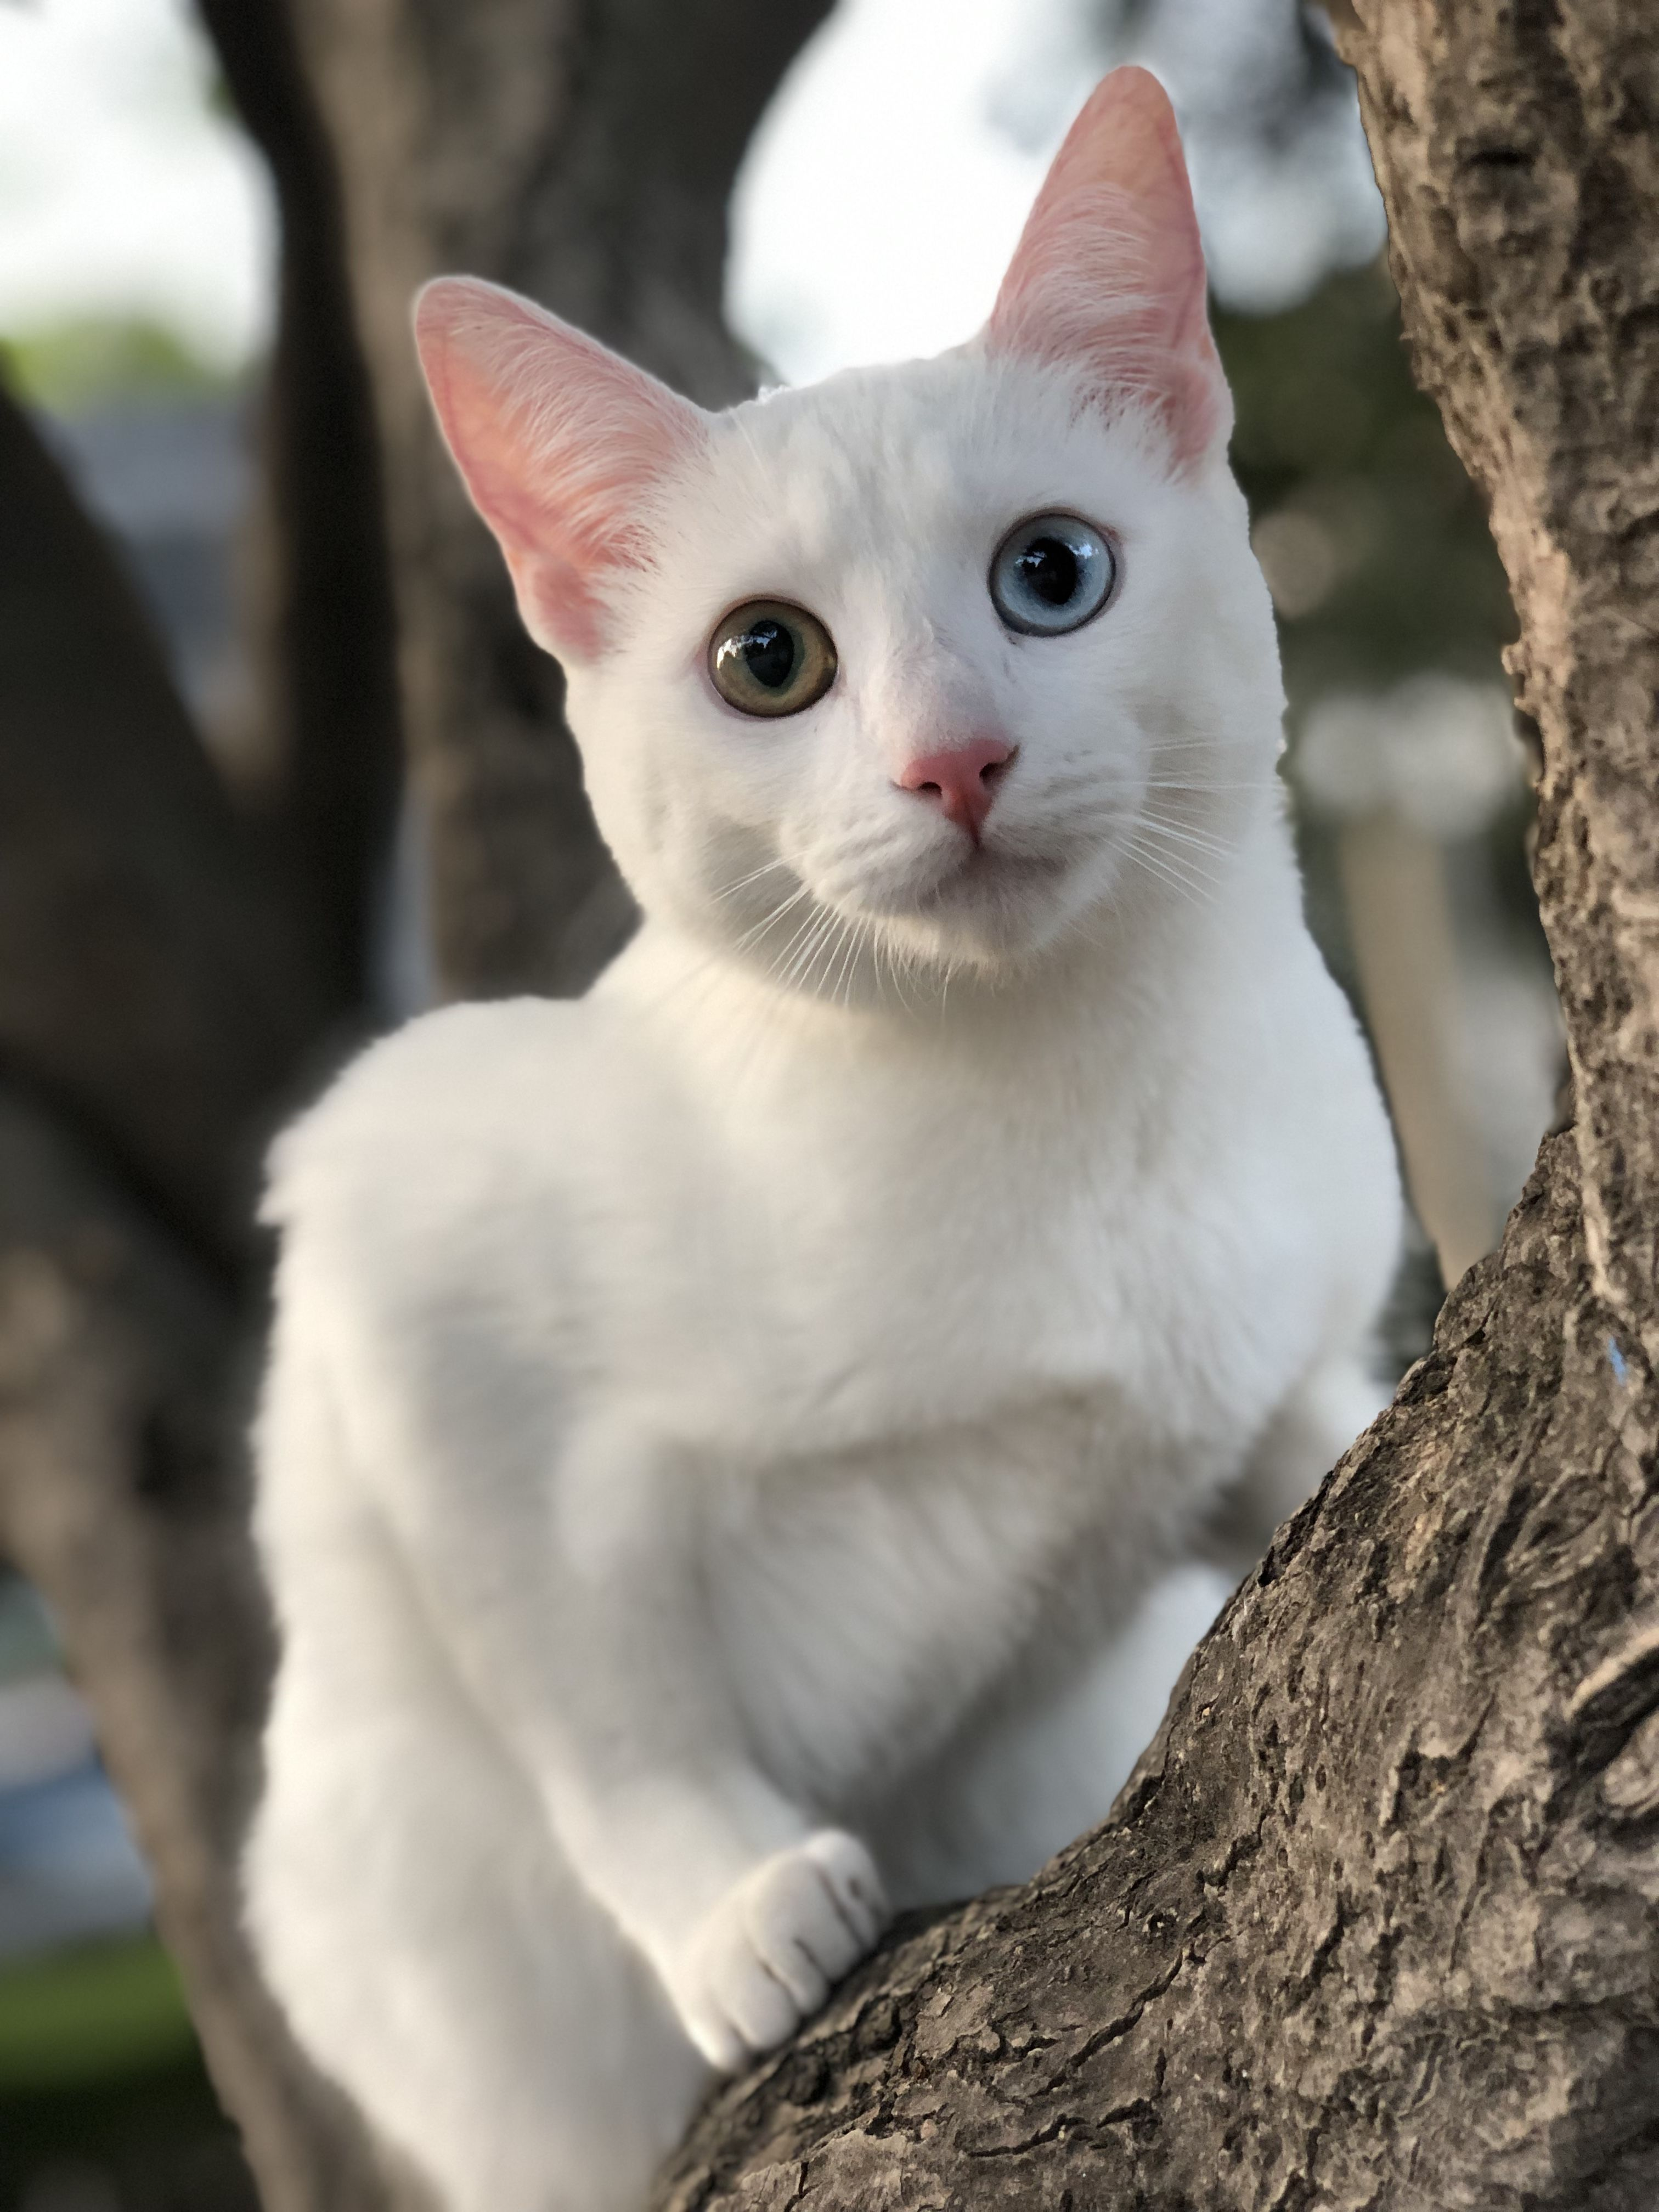 American White Kitten How To Understand Your Cats In 2020 Cute Animals Cat Breeds Cats And Kittens